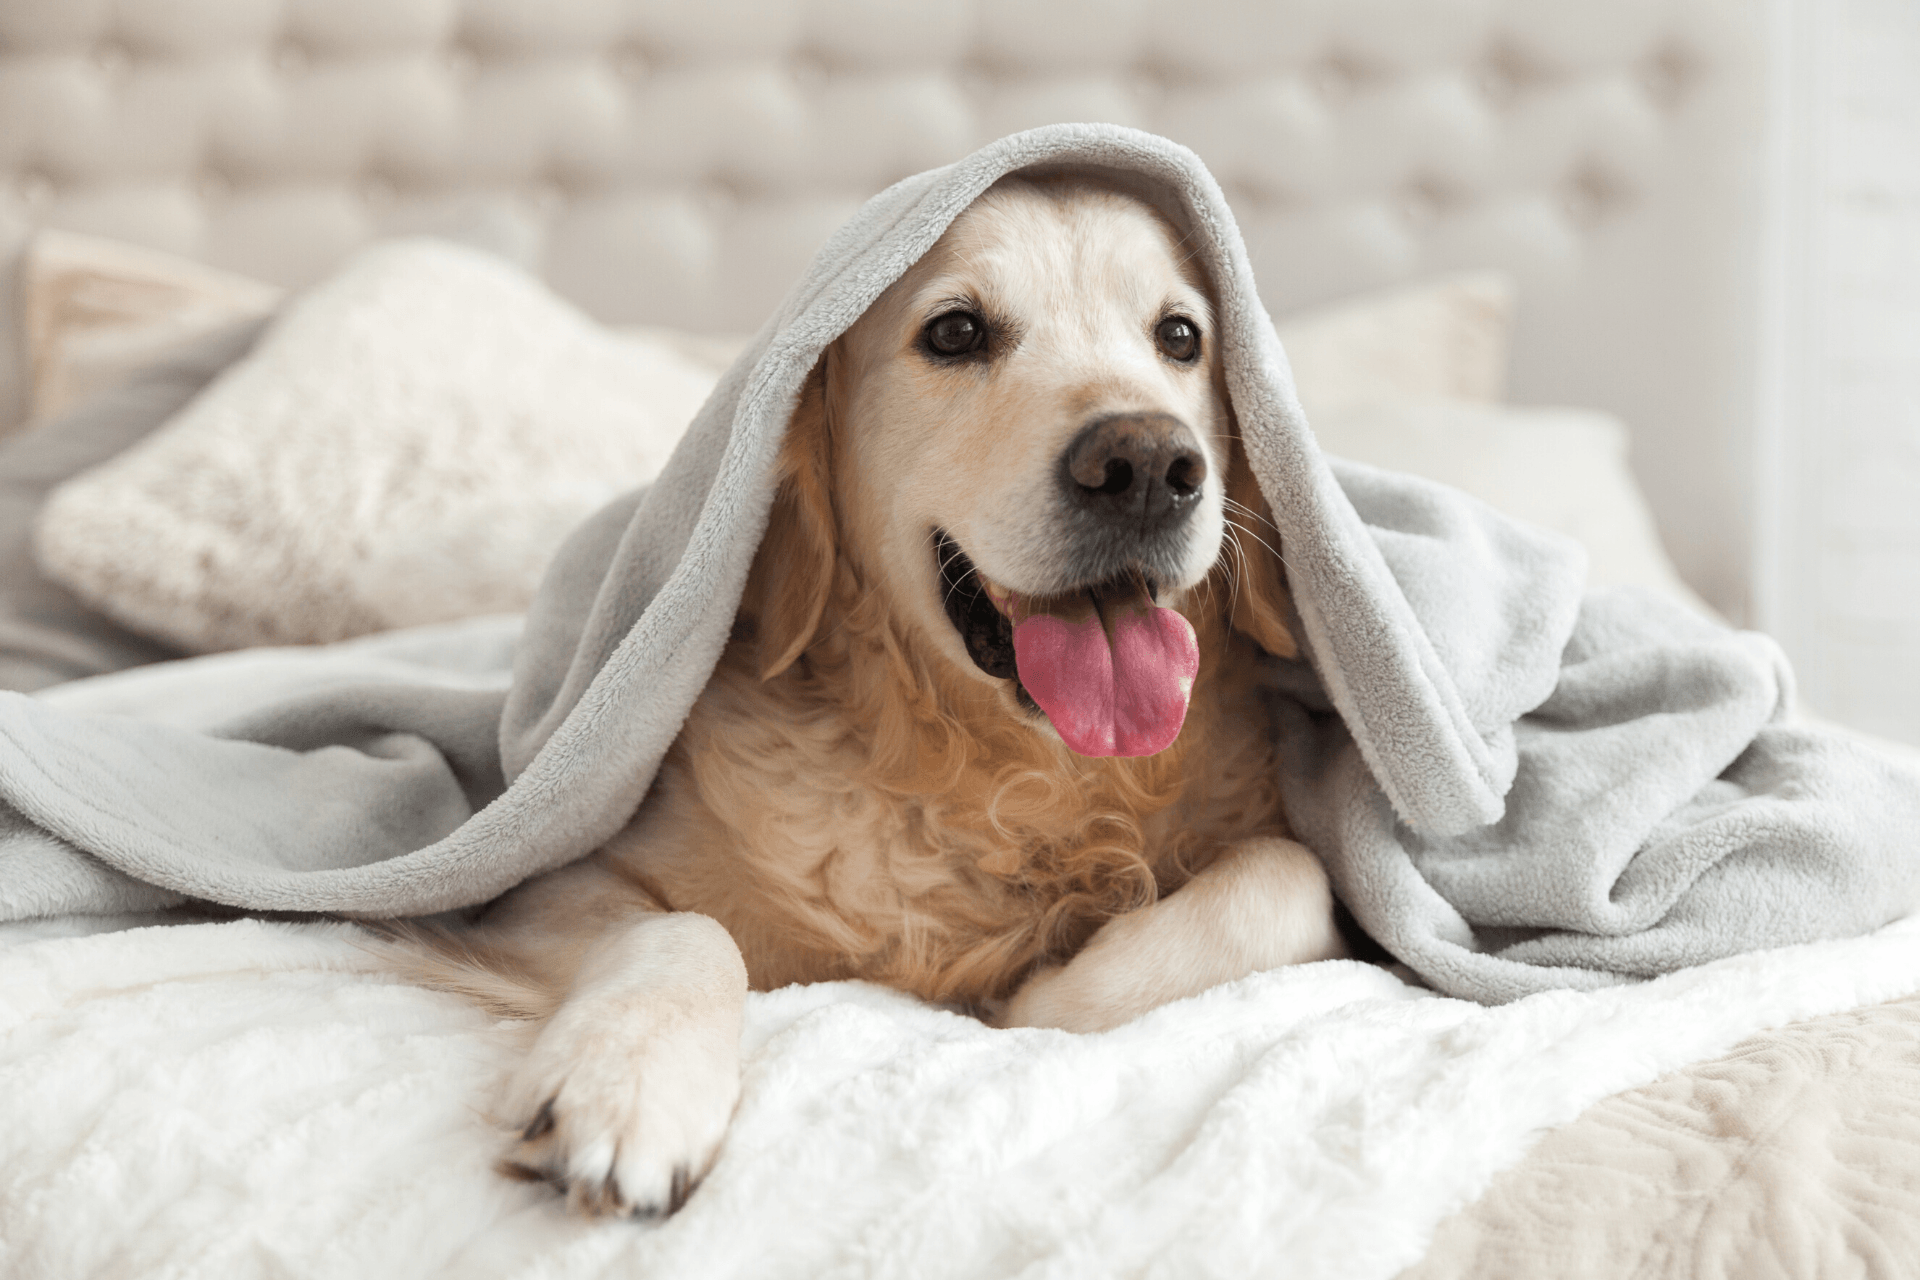 Dog on bed with blanket happy